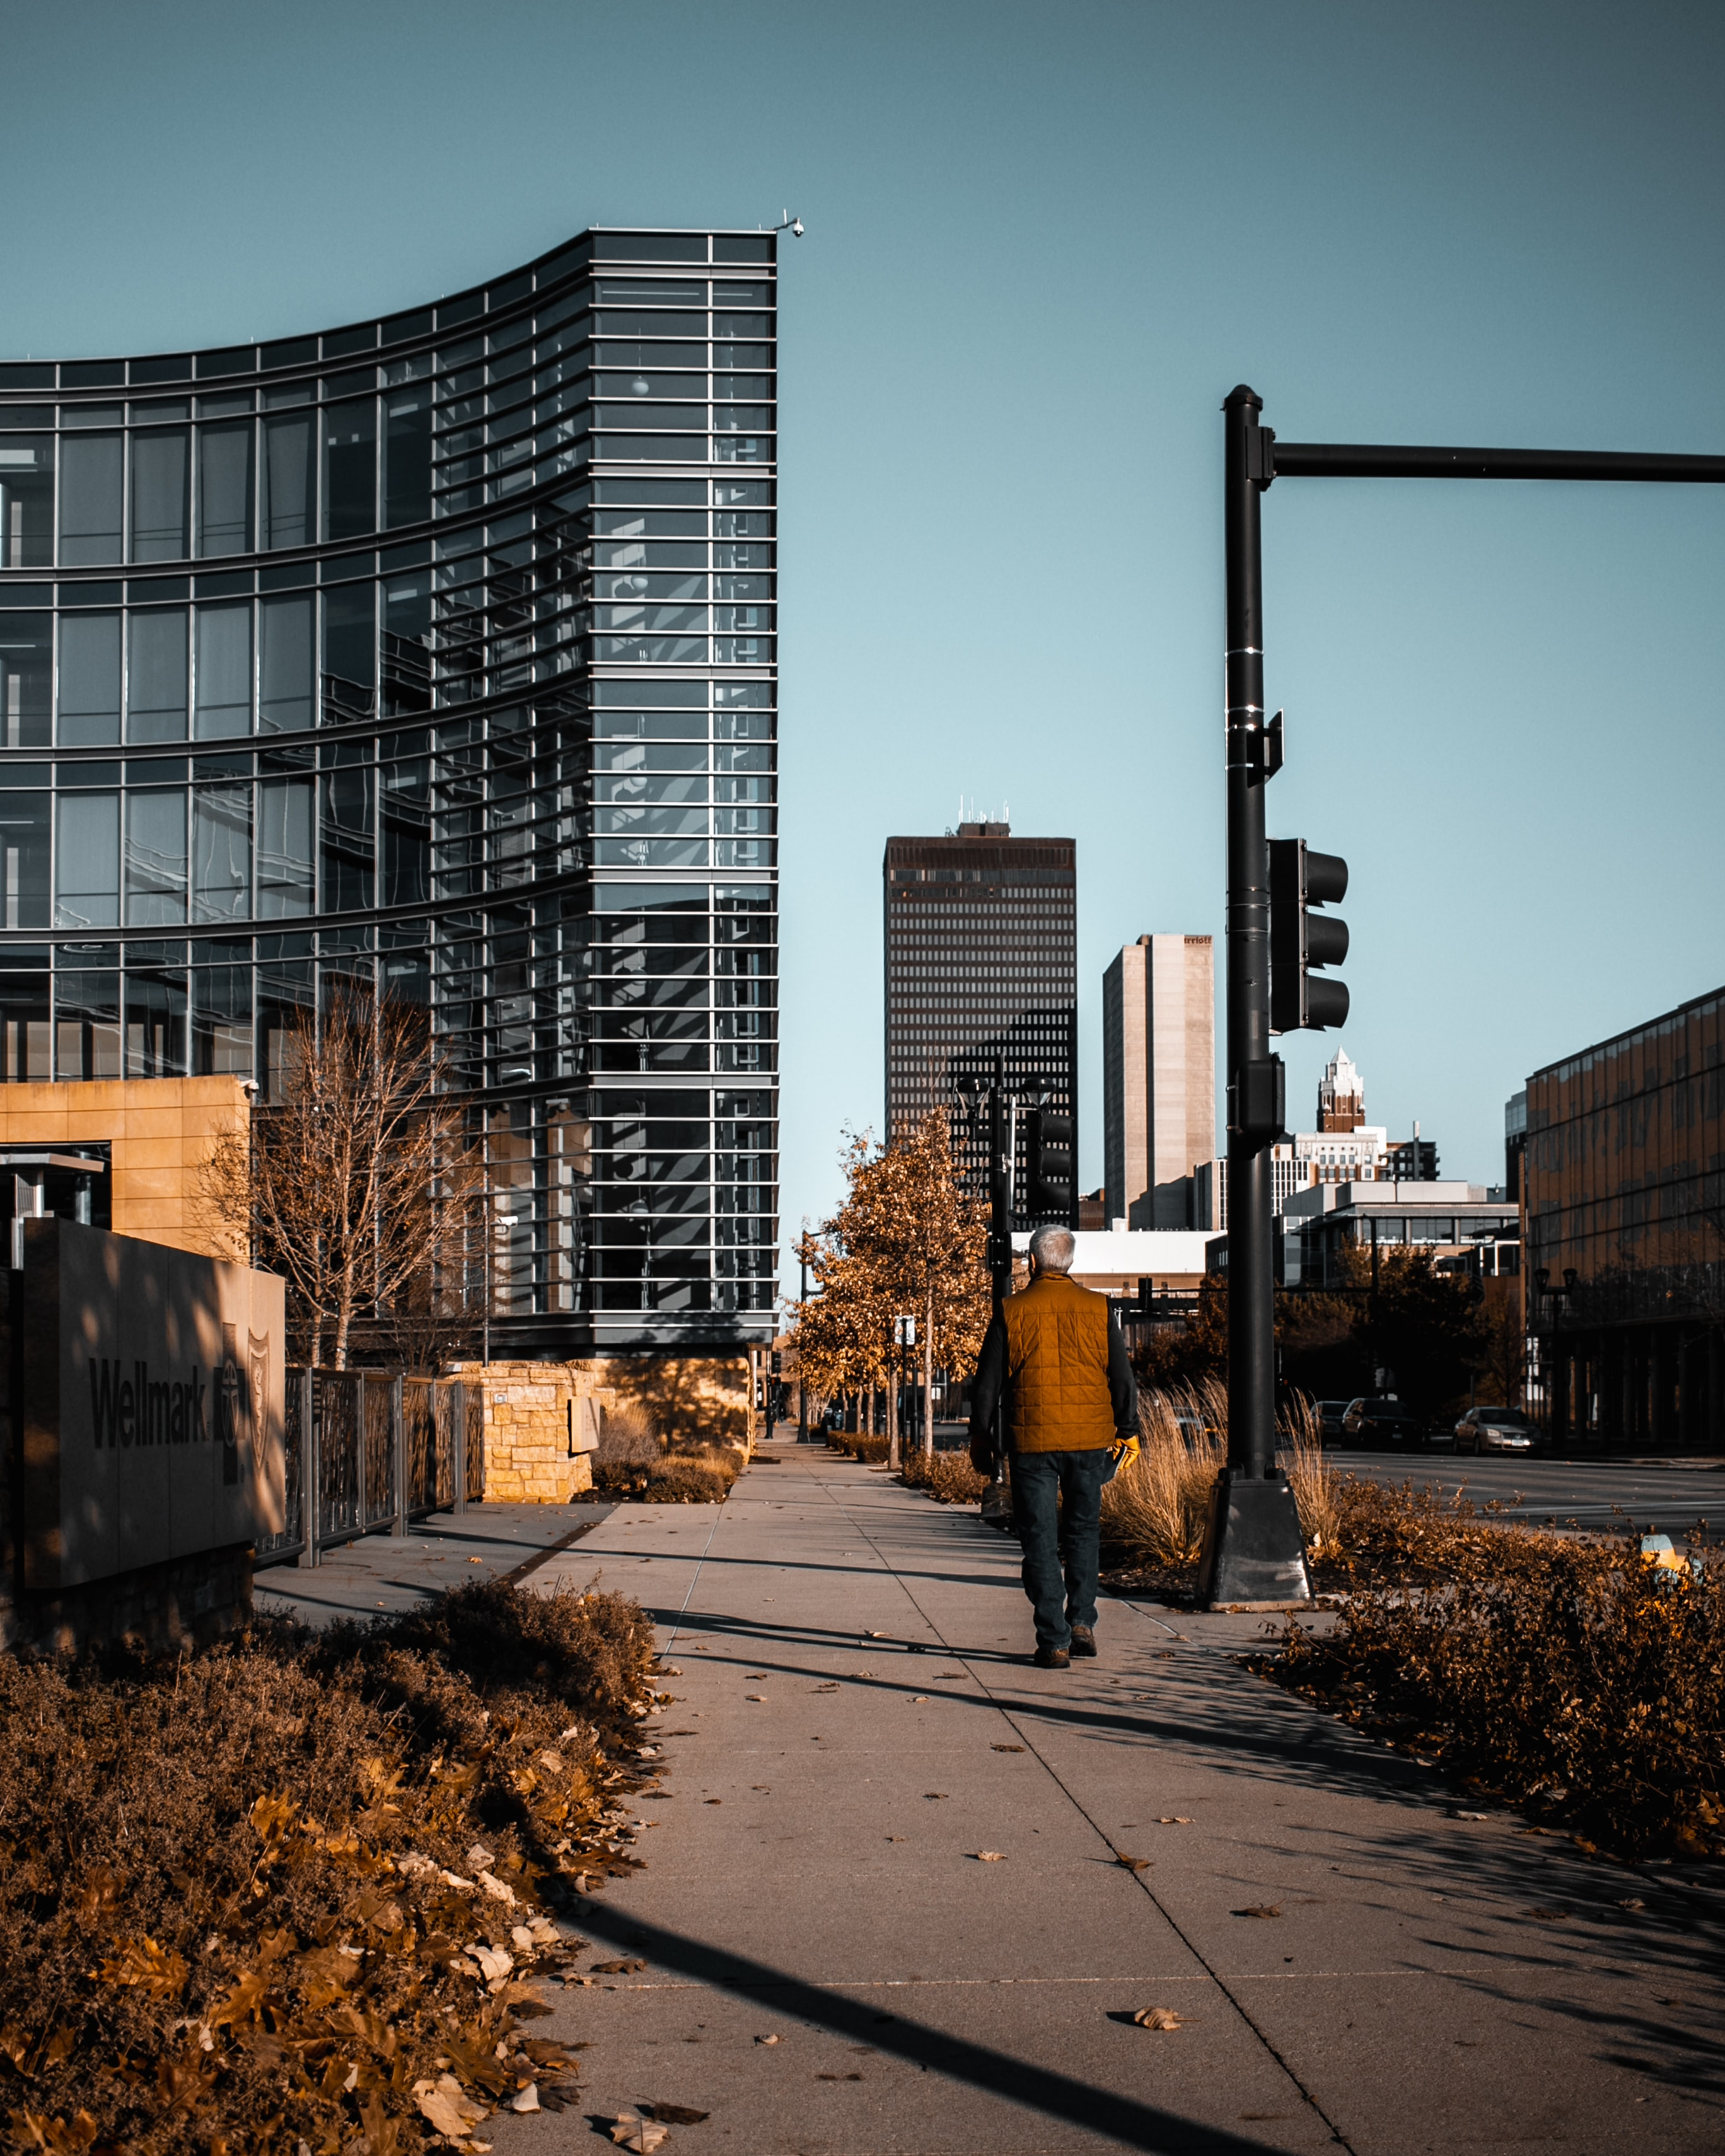 Street view of down town Des Moines Iowa